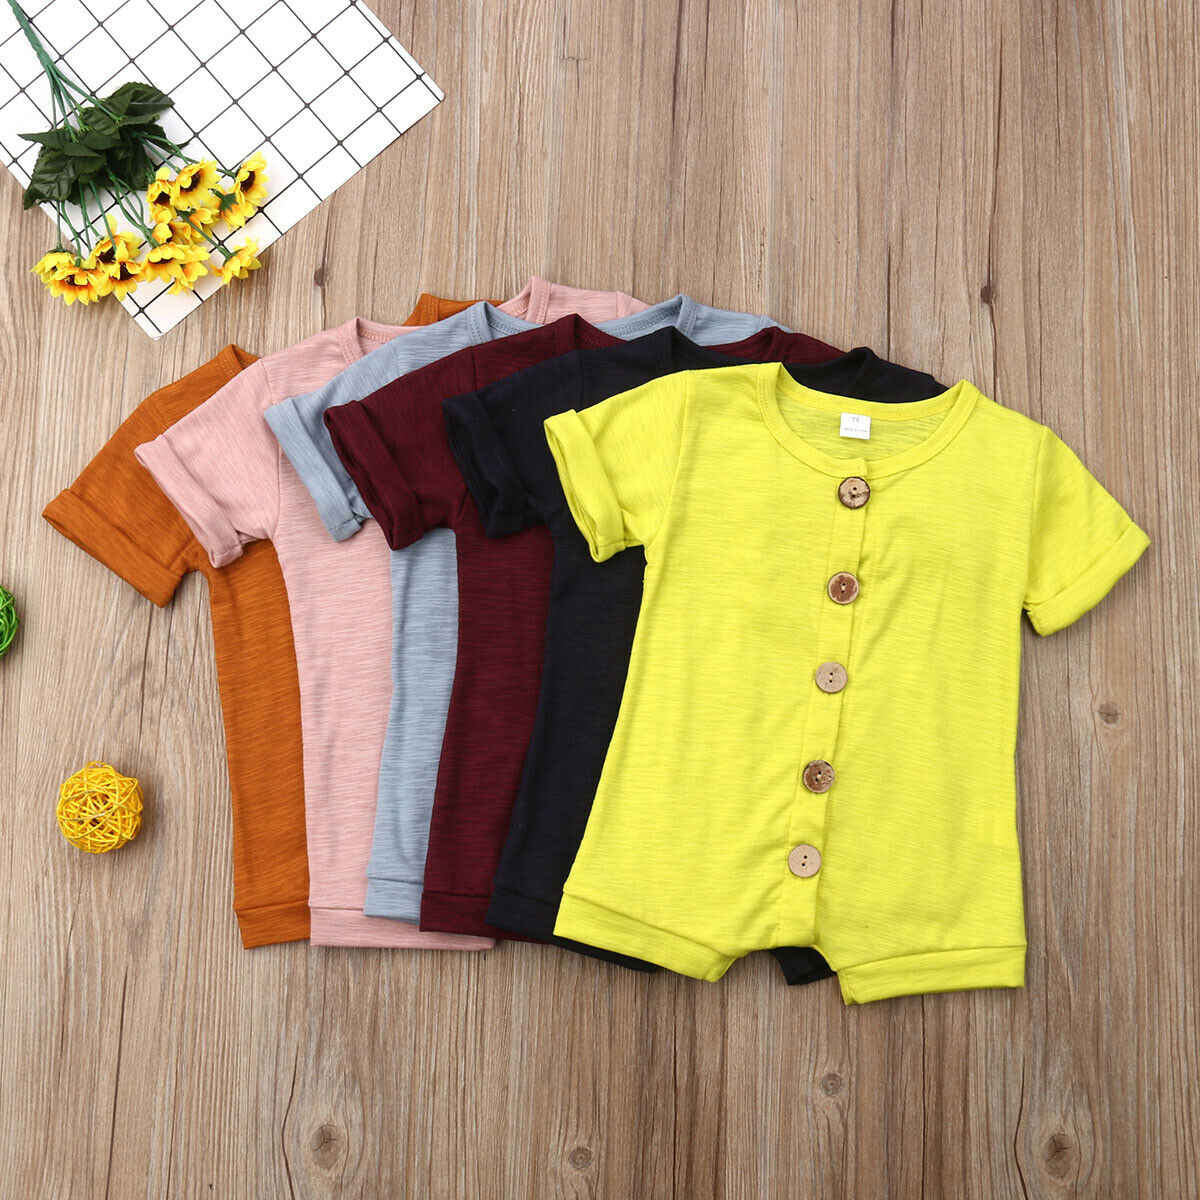 2019 Children Summer Clothing Toddler Newborn Baby Boy Girl Romper Jumpsuit Shortsleeve Sunsuit Candy Color Solid Outfit Clothes